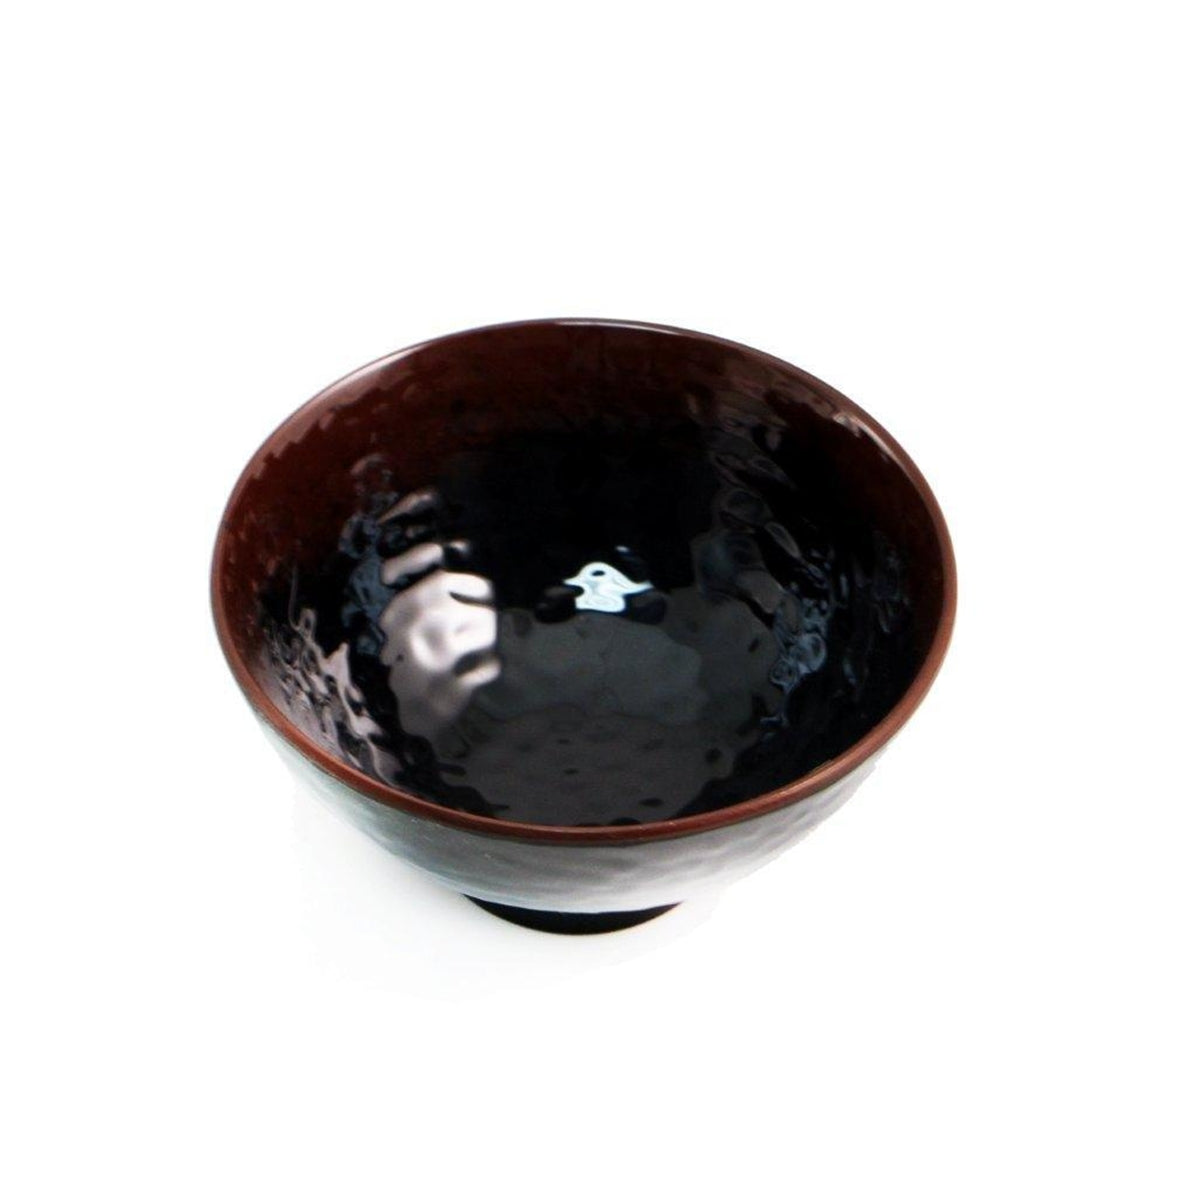 "Melamine Black Rice Bowl with Brown Trim 10 fl oz / 4.76"" dia"